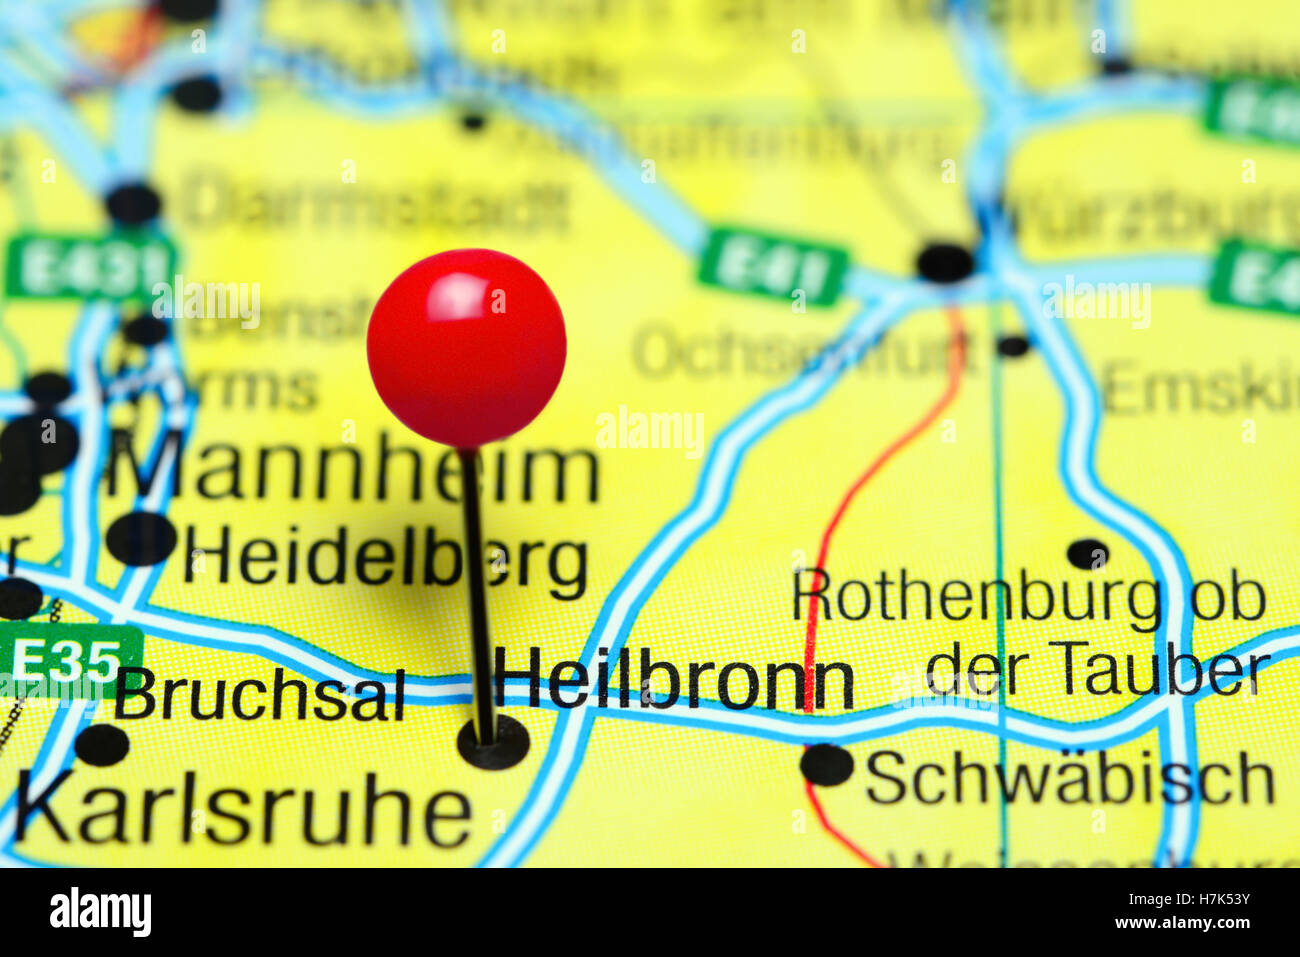 Heilbronn pinned on a map of Germany Stock Photo 125196287 Alamy